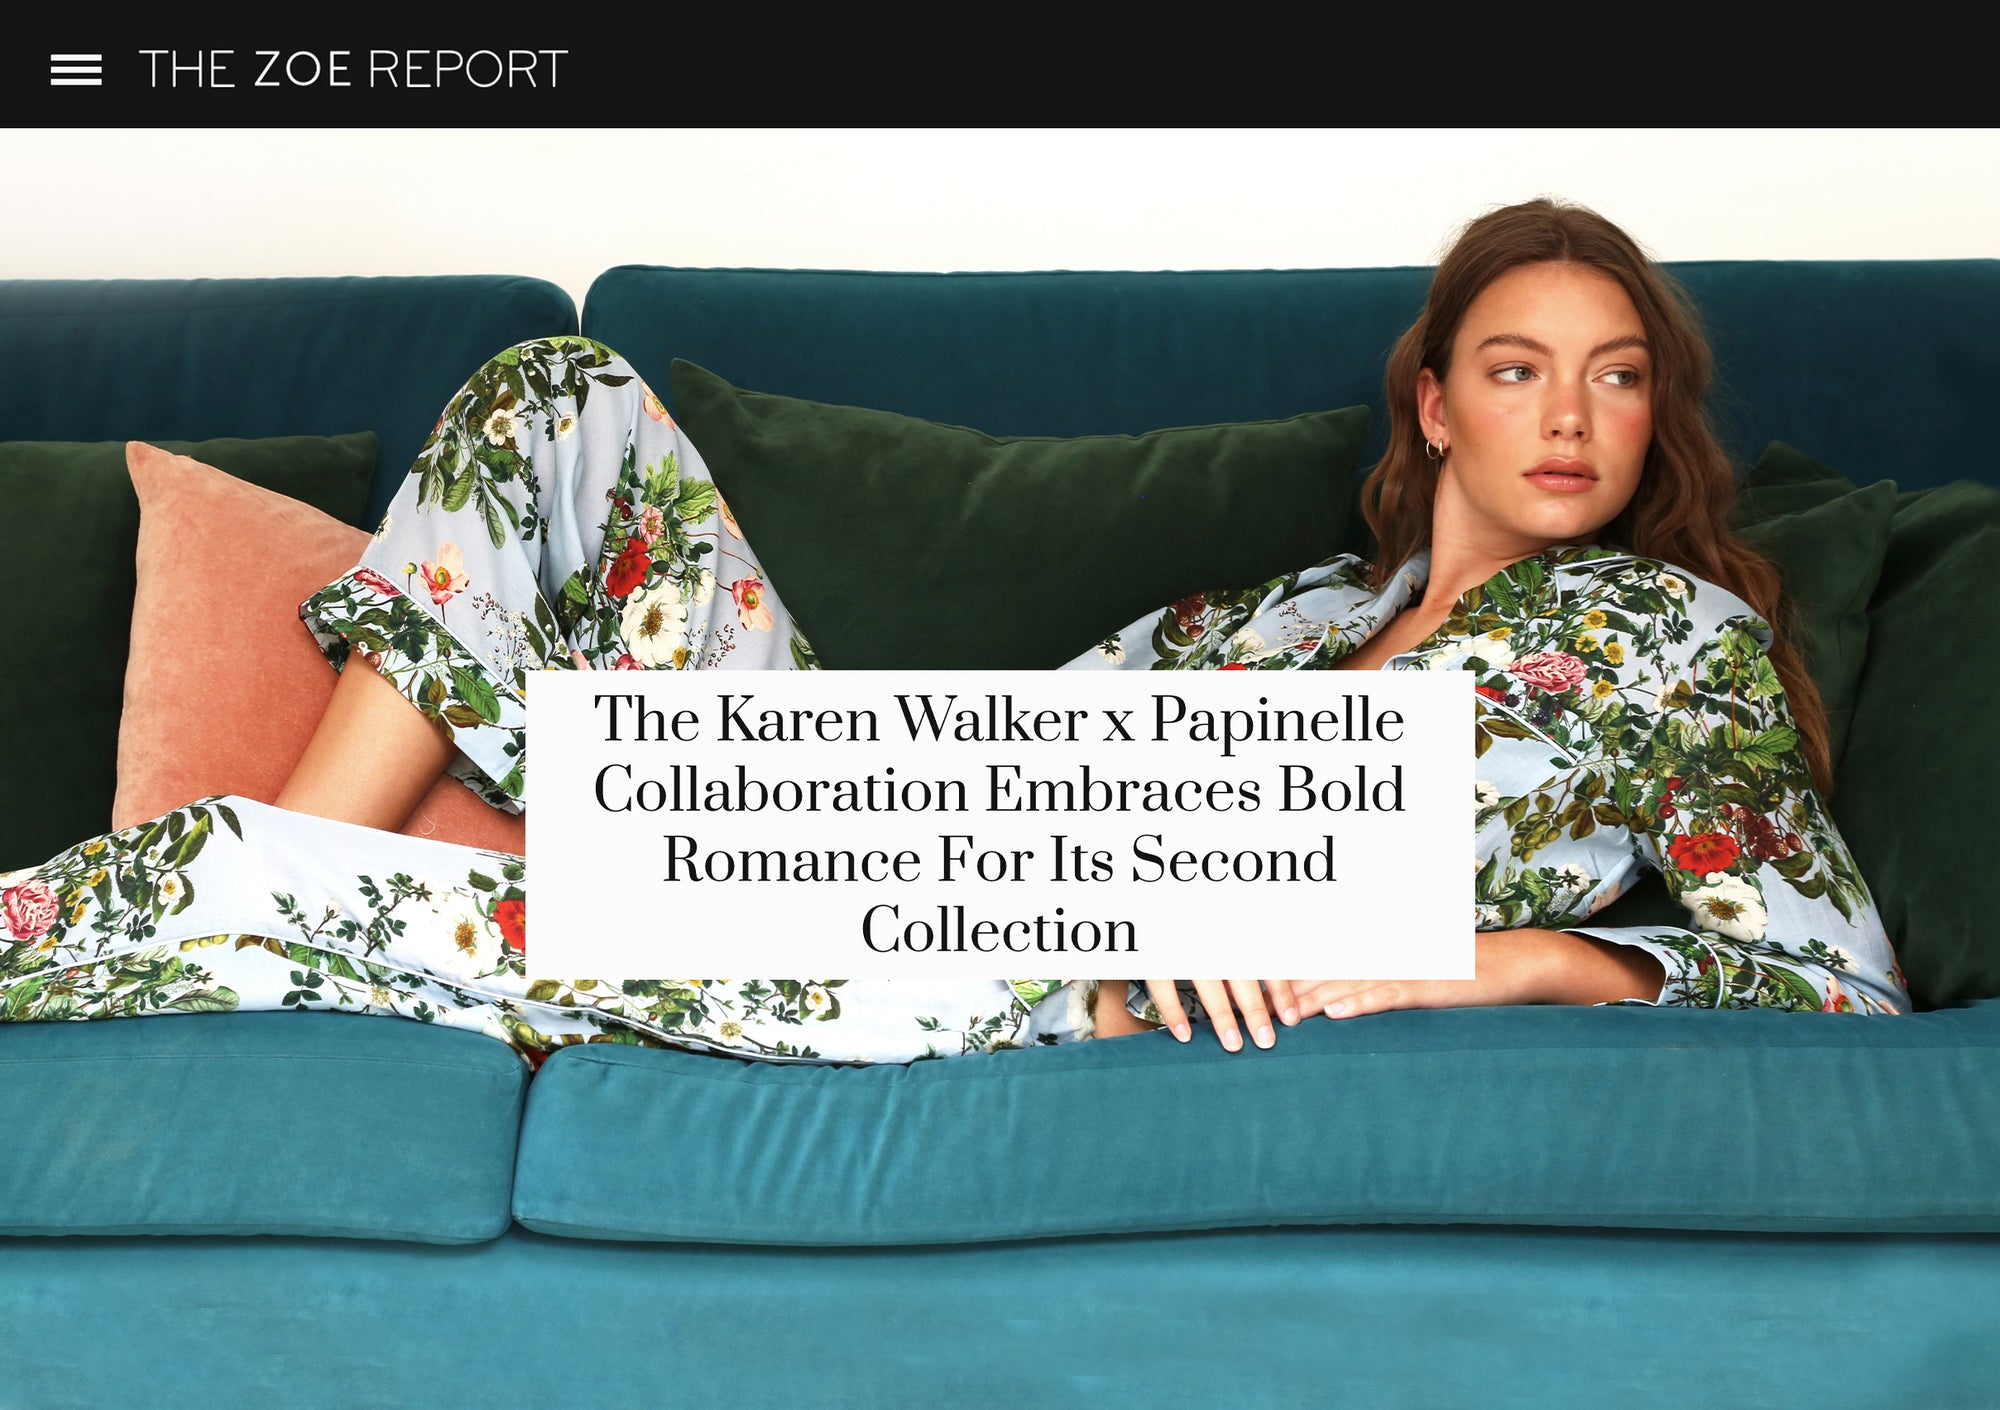 screenshot of the zoe report article on papinelle karen walker collaboration